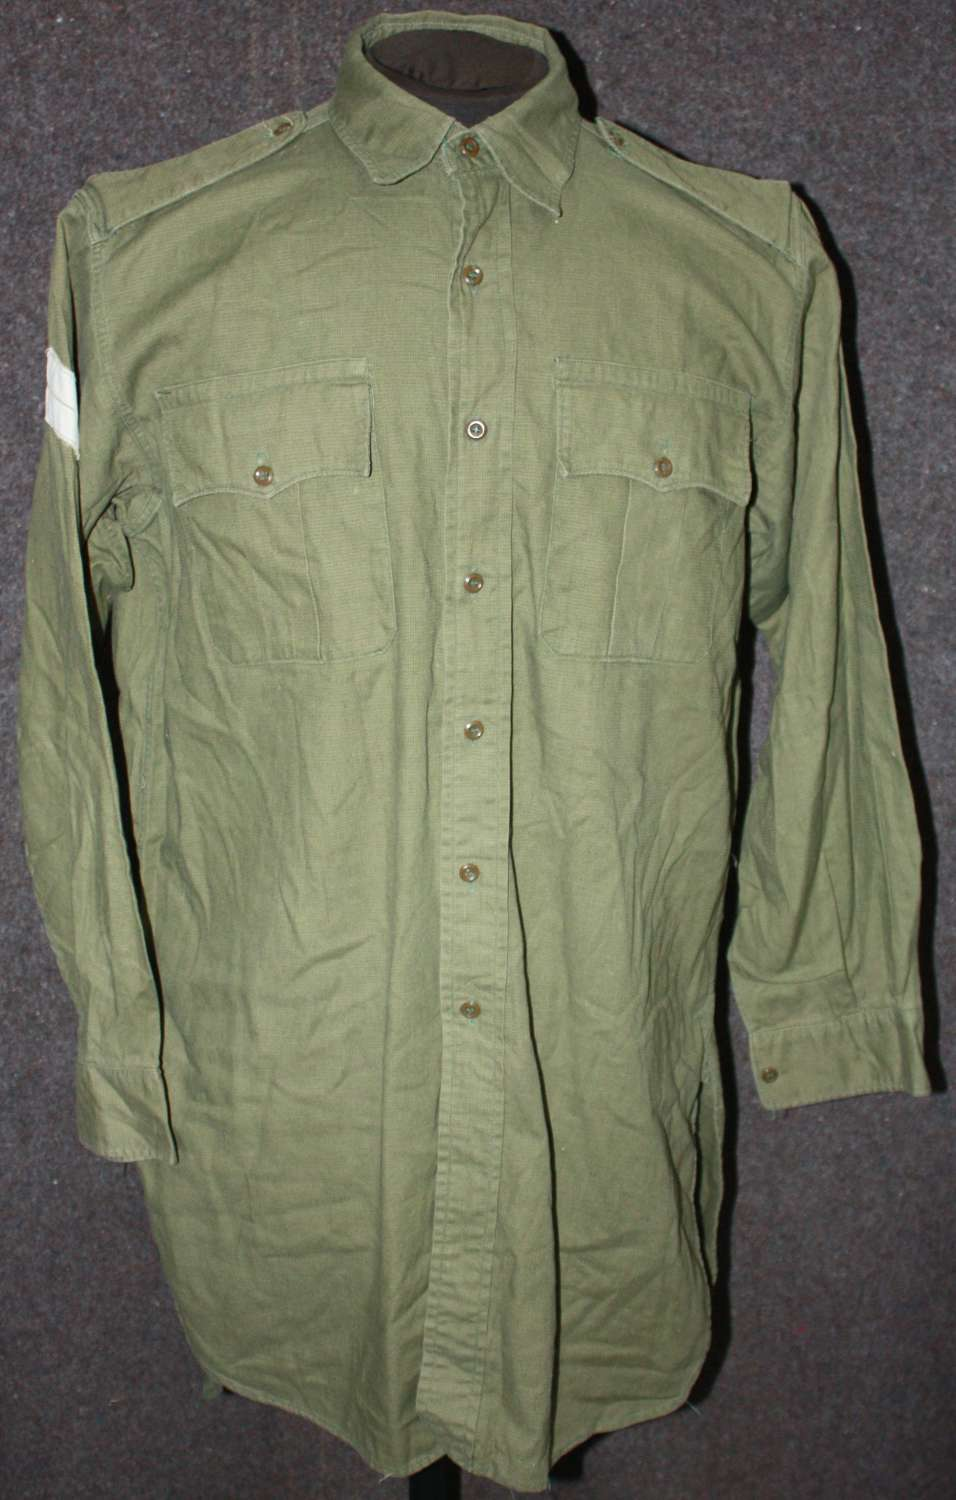 A POST WWII JUNGLE BUSH SHIRT MALAYA PERIOD EXAMPLE